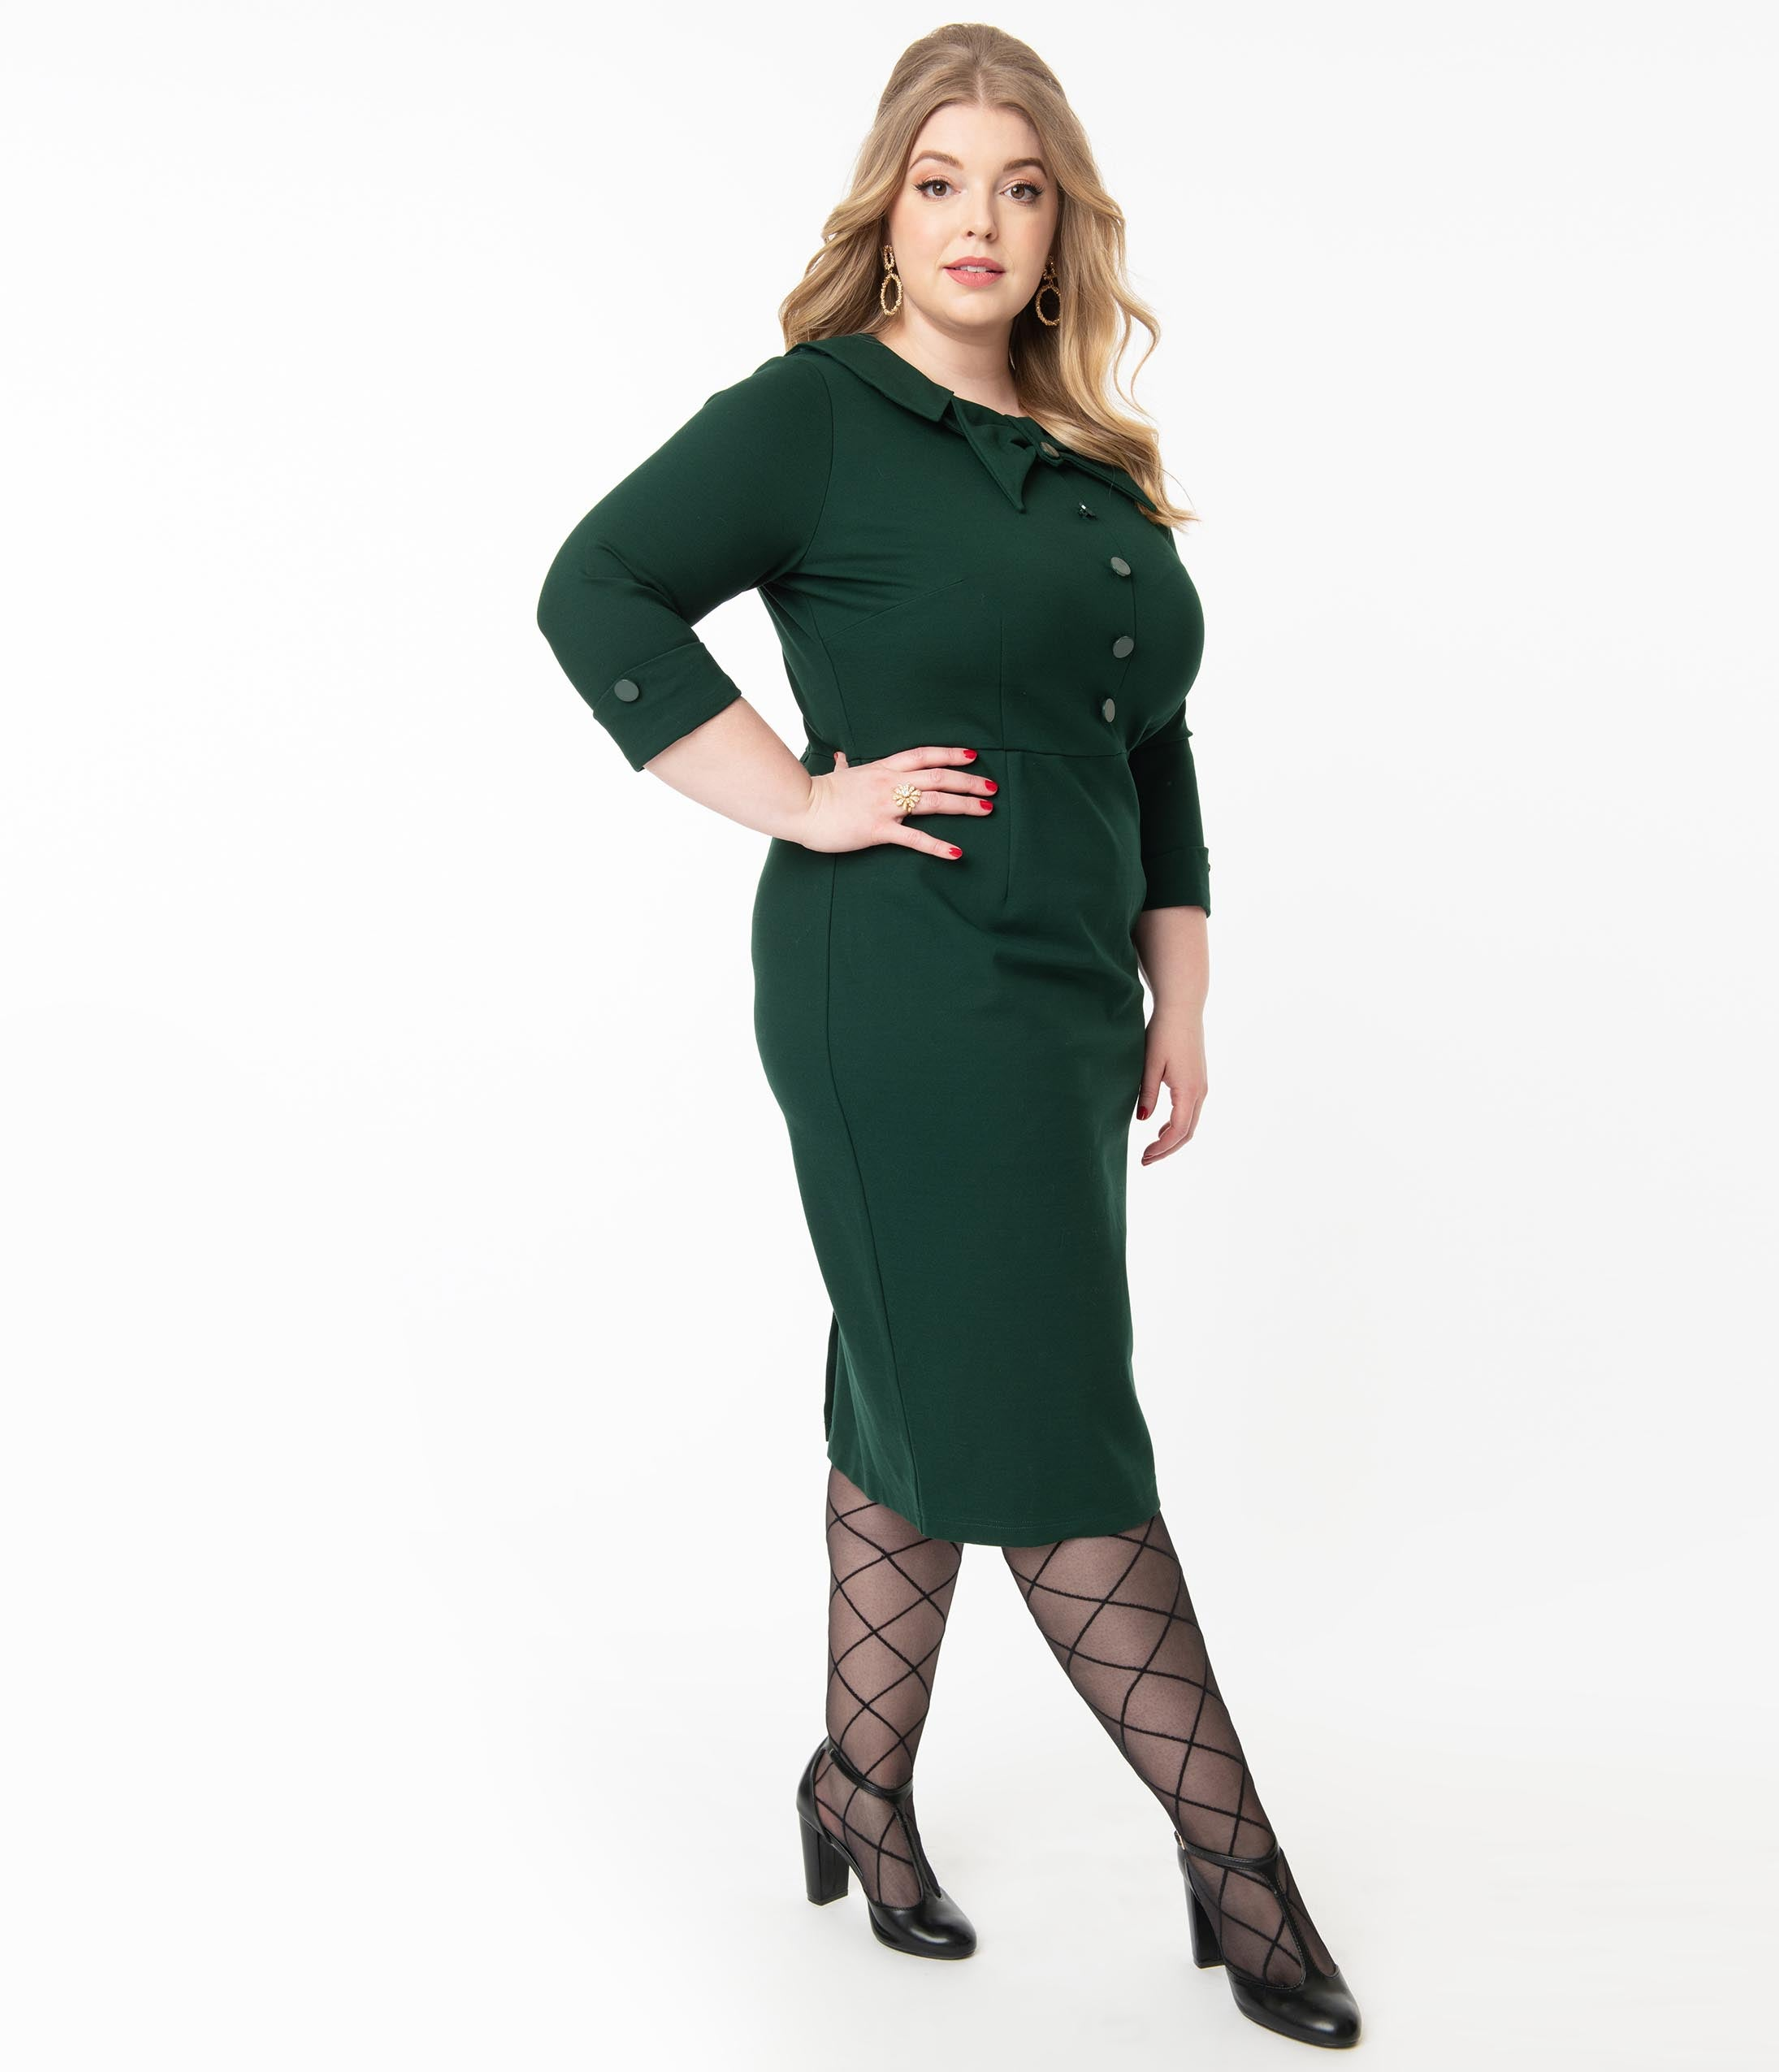 Wiggle Dresses | Pencil Dresses 40s, 50s, 60s Plus Size 1940S Style Dark Green Ceo Wiggle Dress $142.00 AT vintagedancer.com